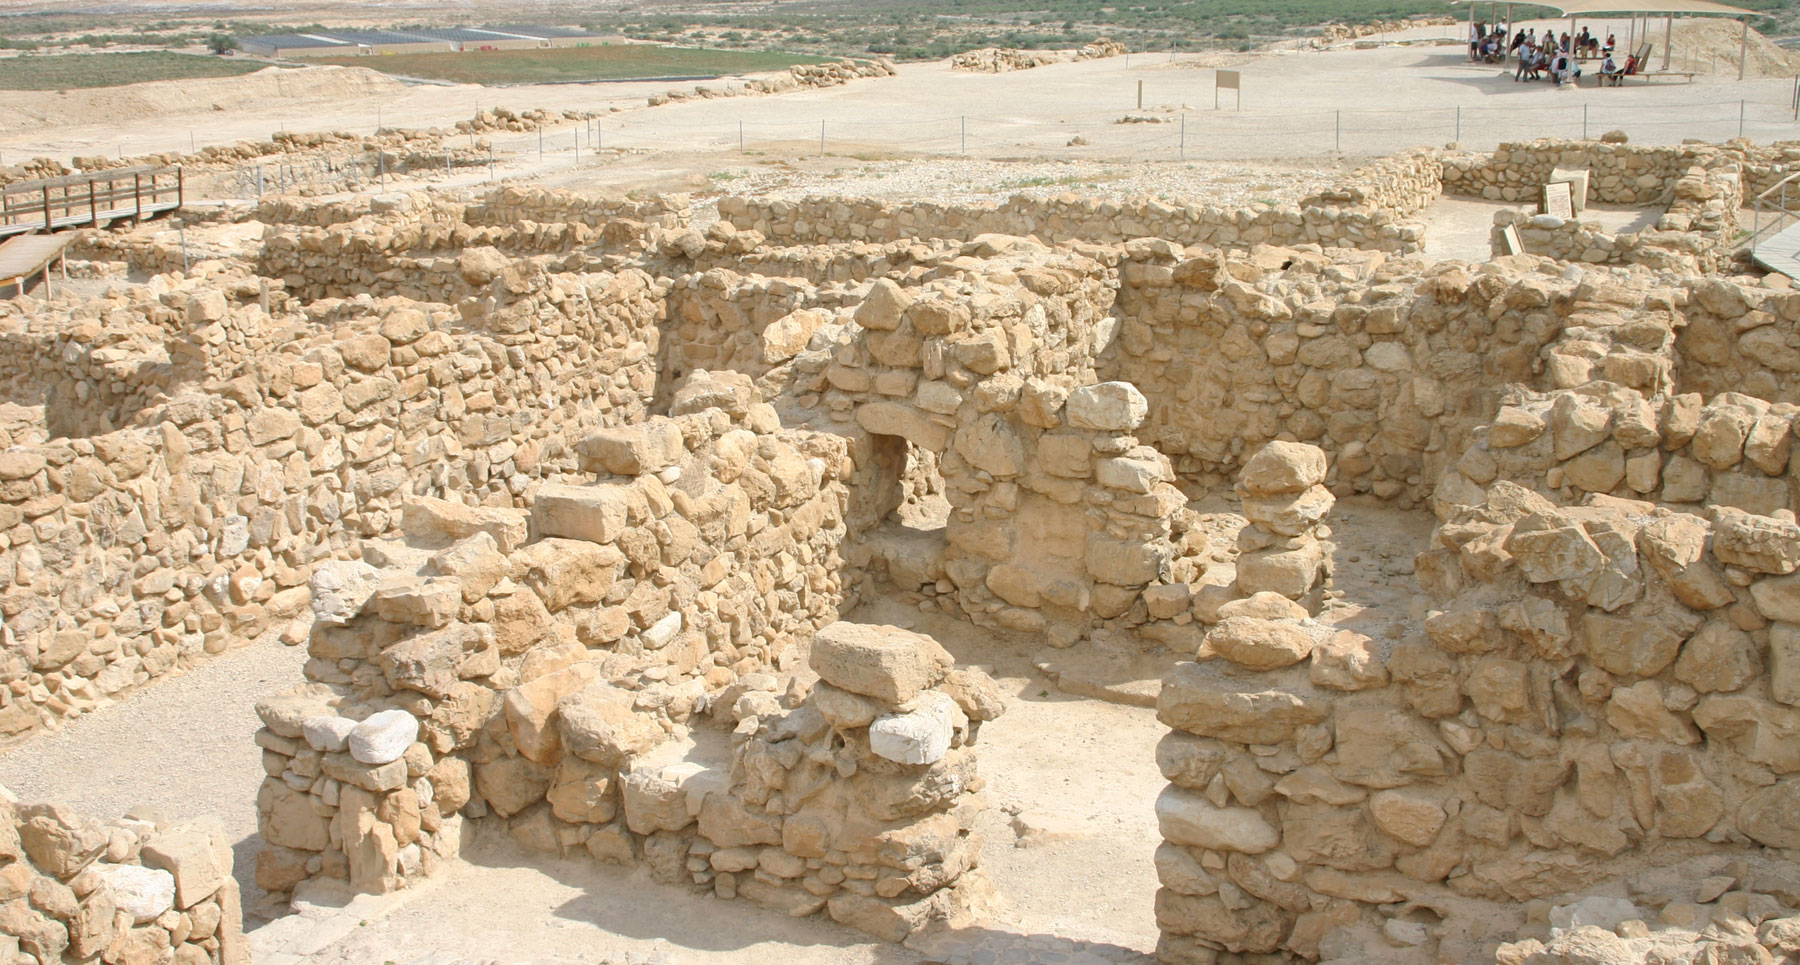 Qumran site: The Scriptorium